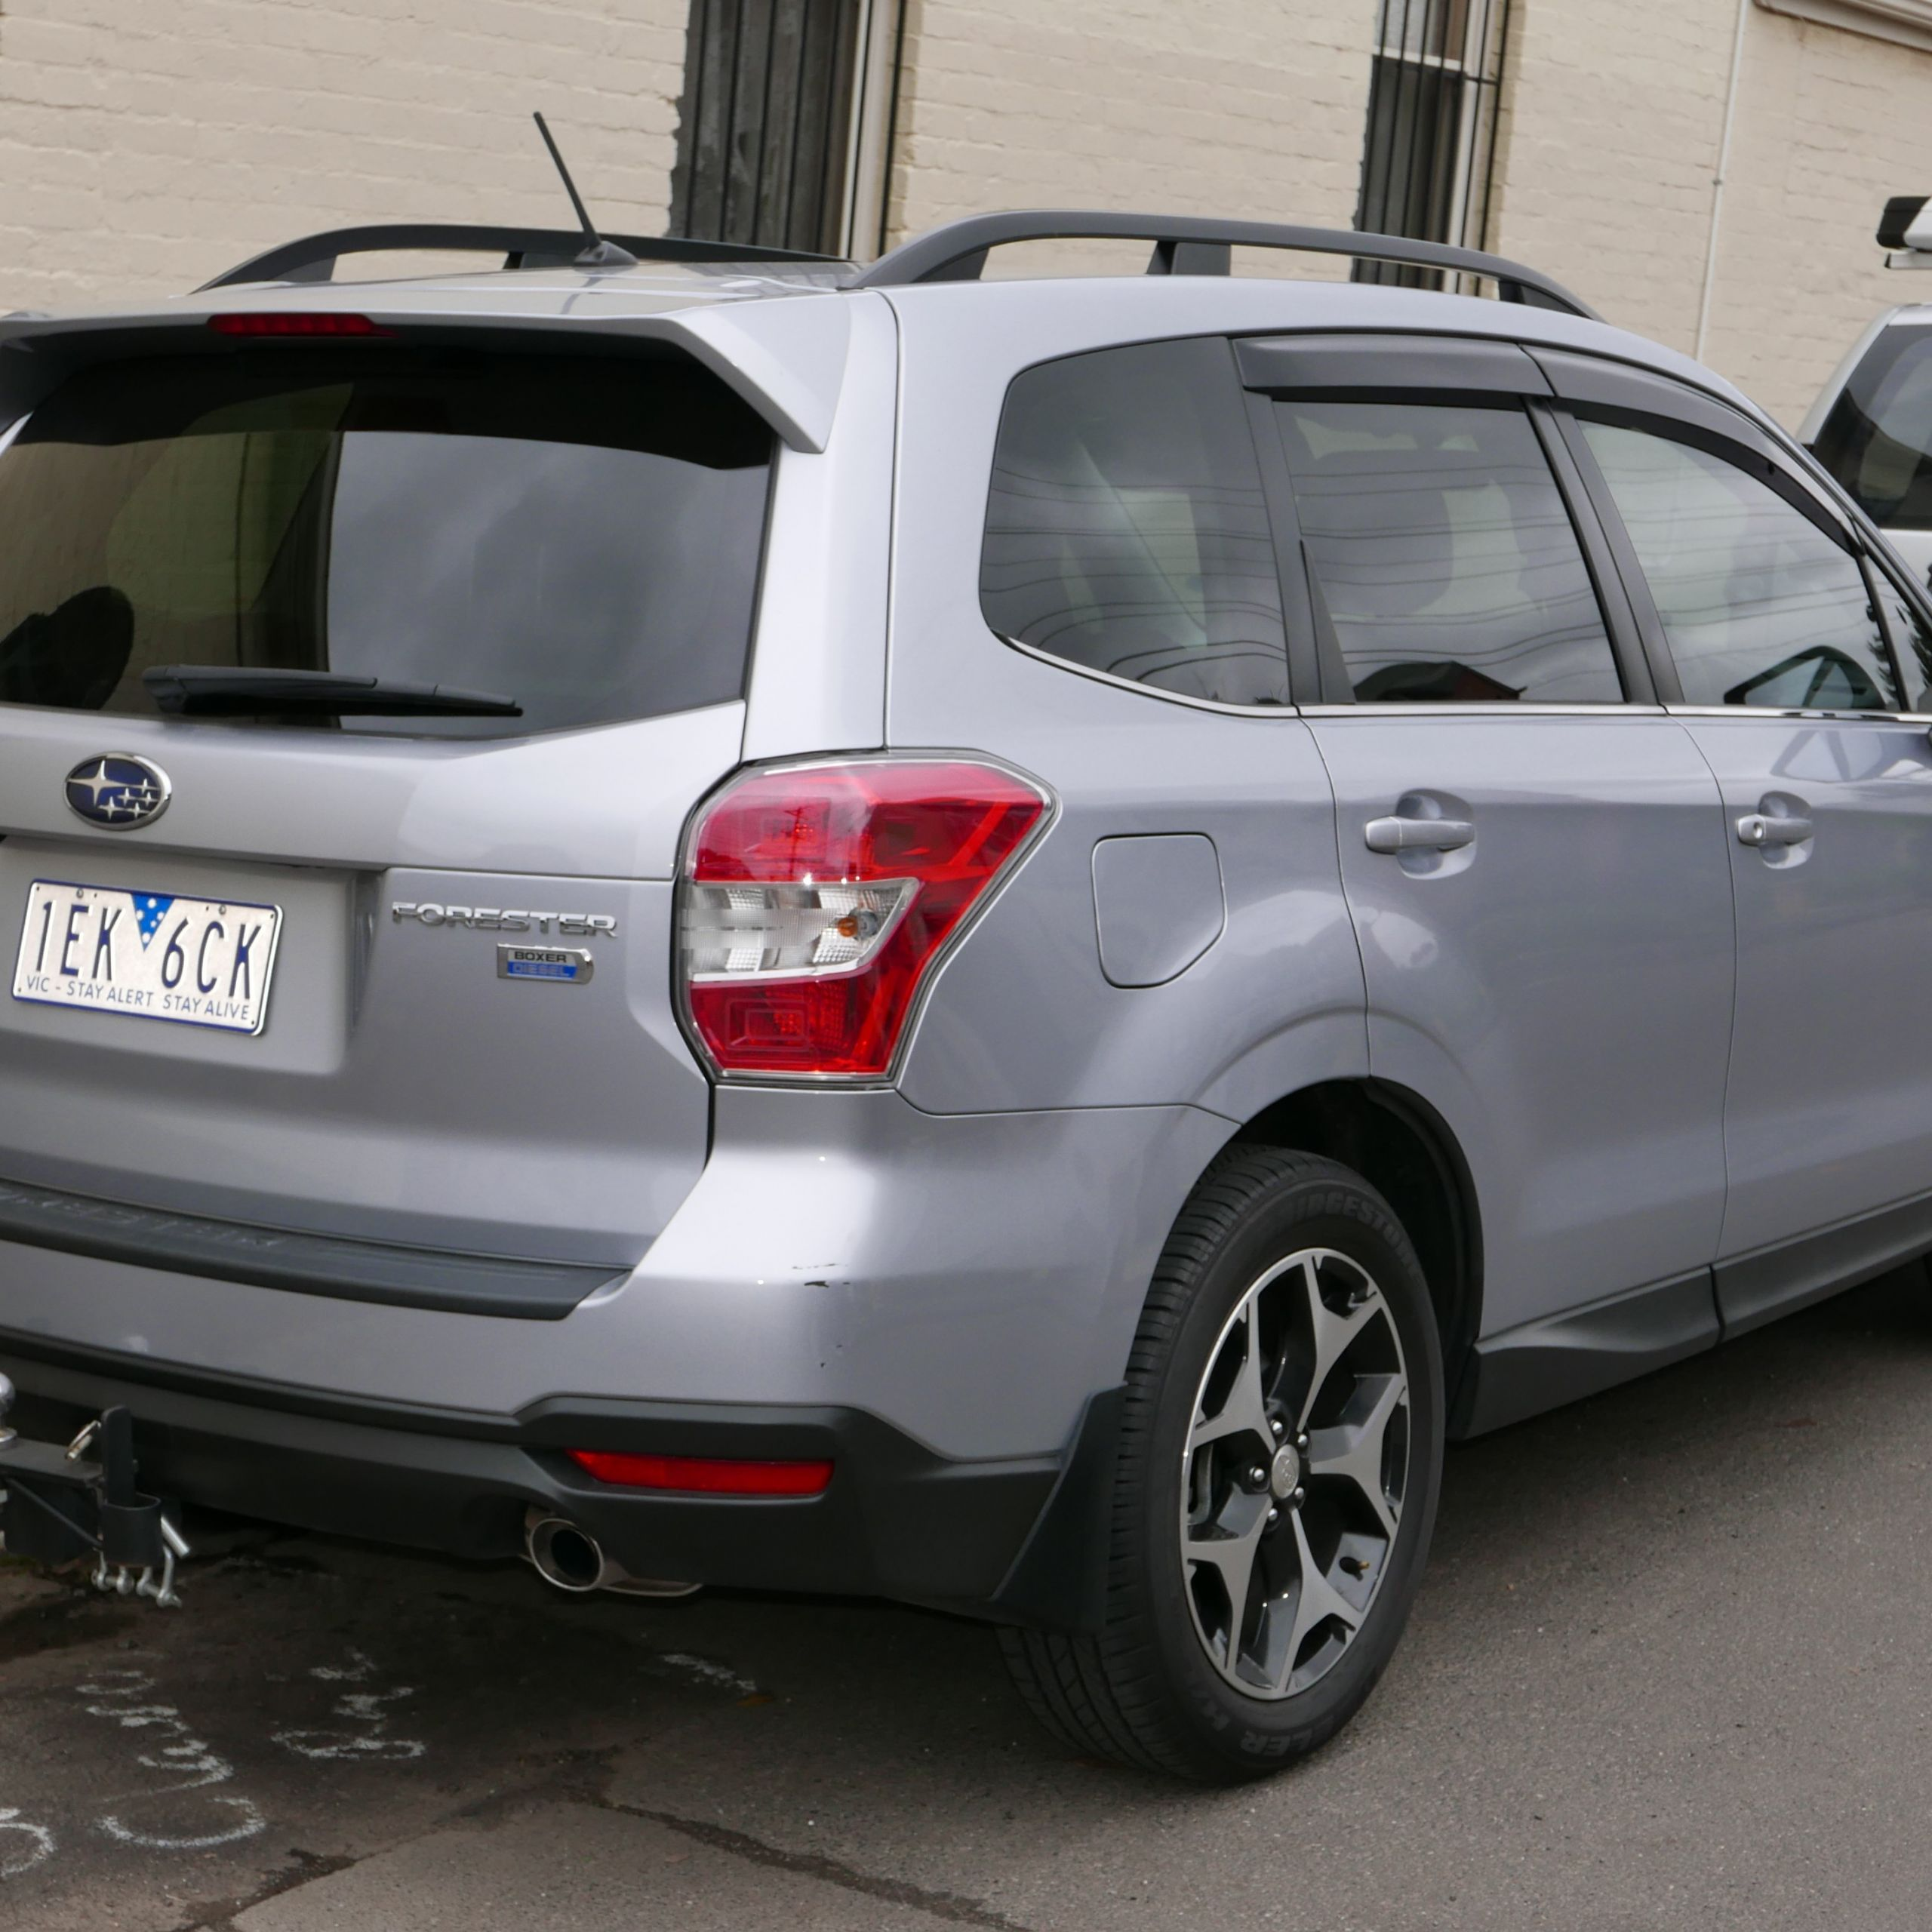 Used Subaru forester Best Of File 2013 Subaru forester Sj My13 2 0d S Wagon 2015 06 18